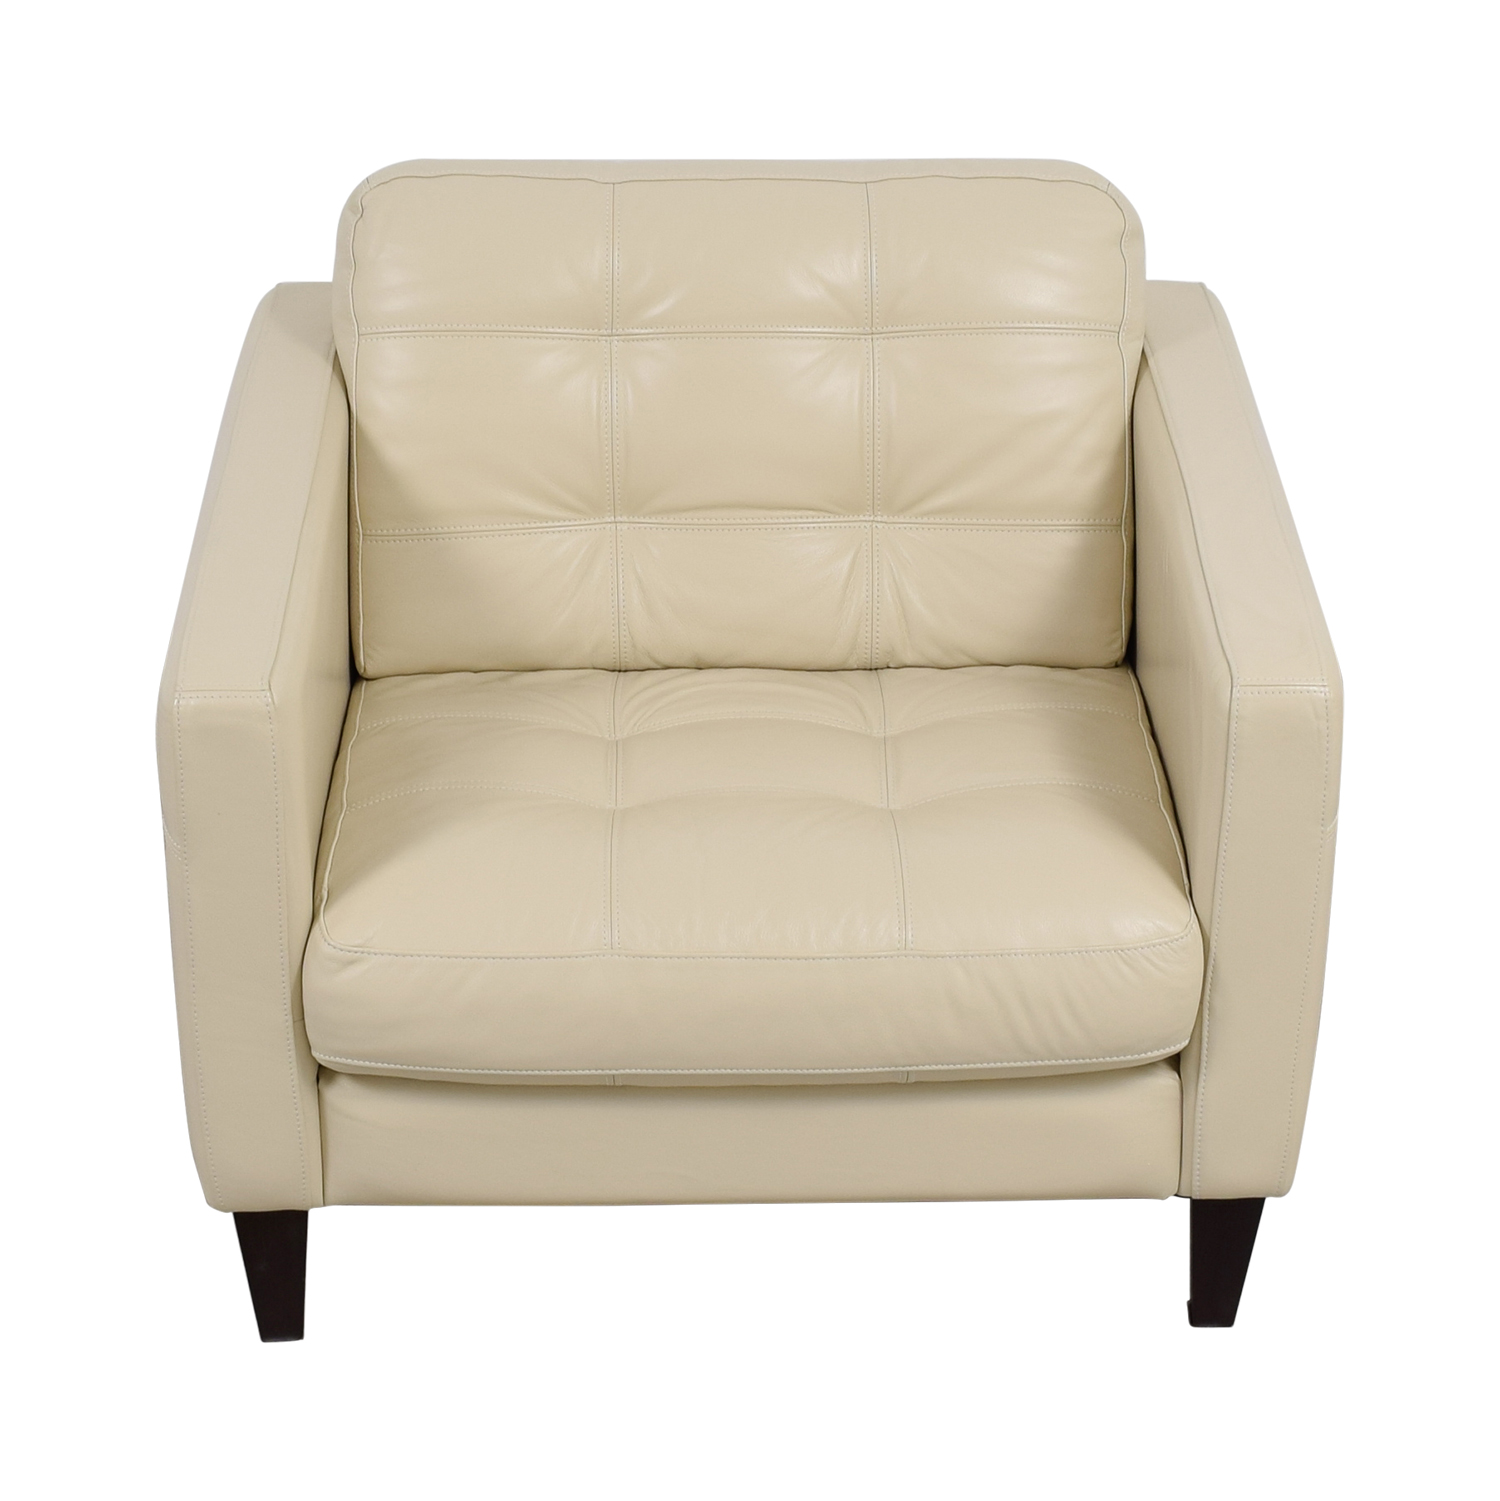 Macys Macys Milano White Leather Tufted Accent Chair